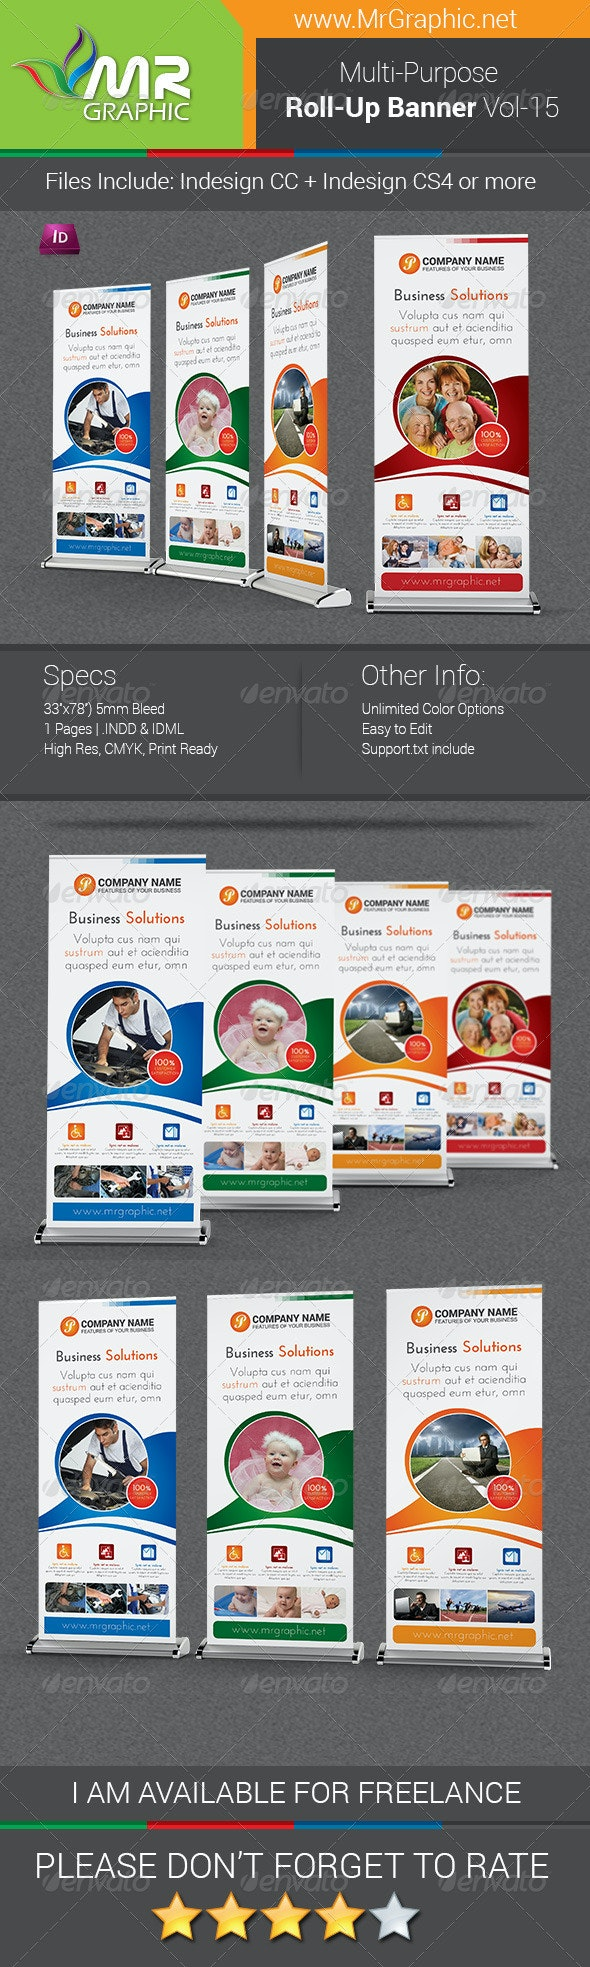 Multi-Purpose Business Roll-Up Banner Vol-15 - Signage Print Templates